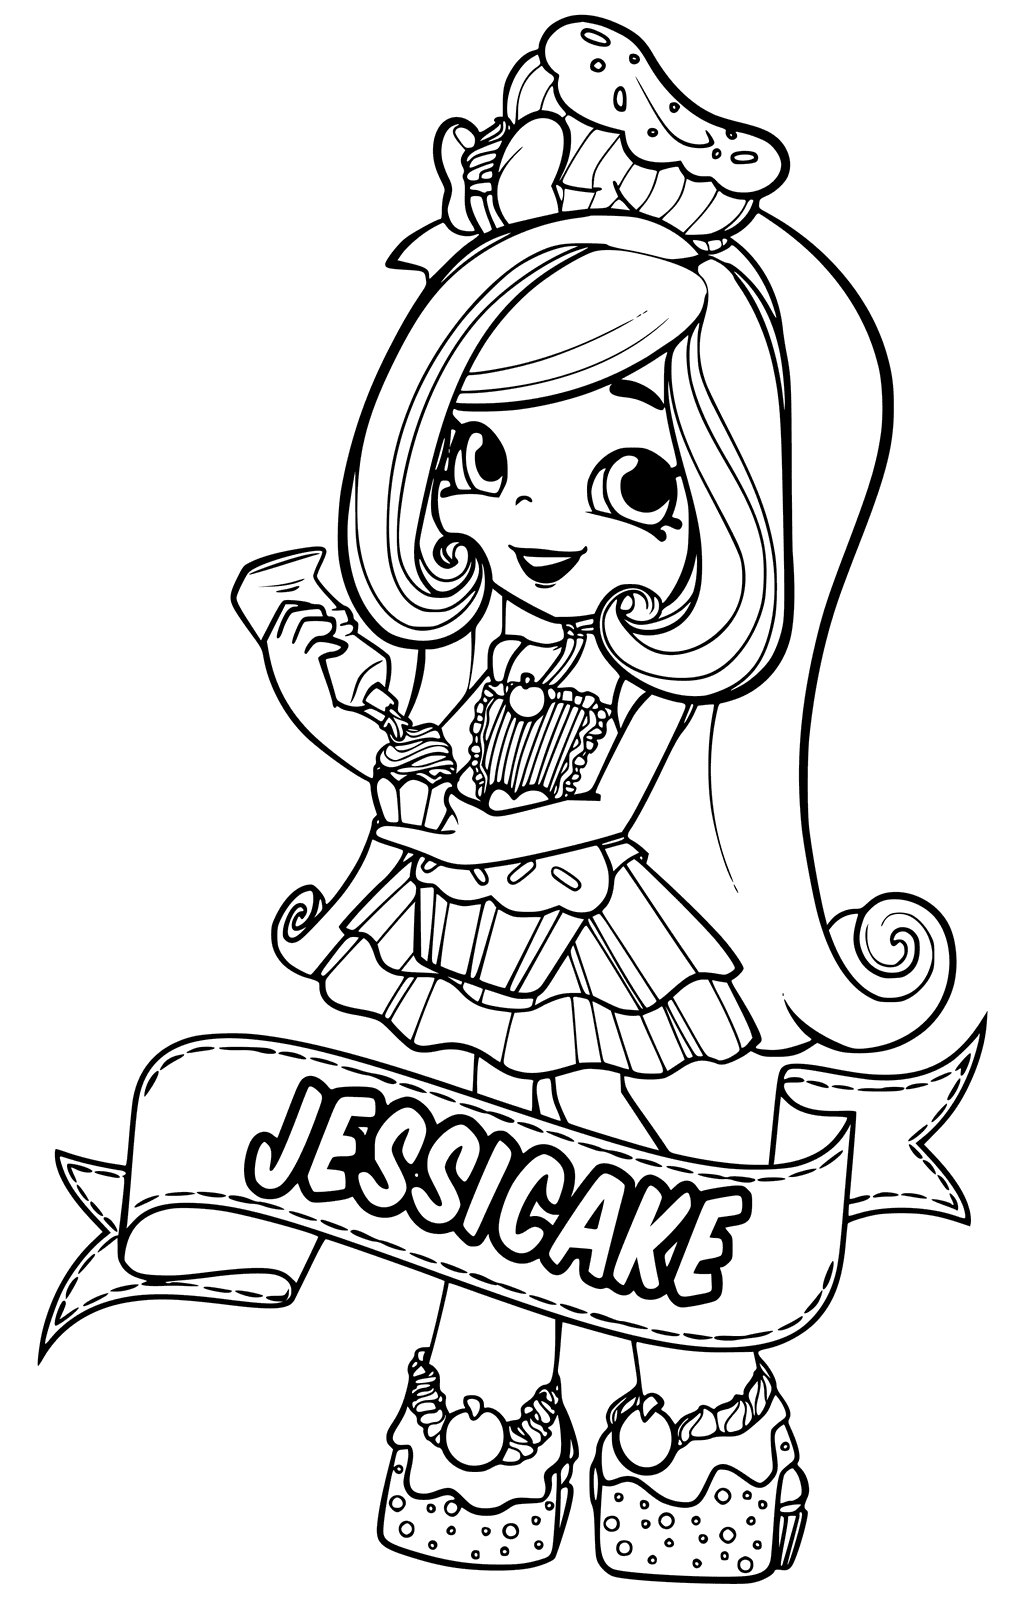 Printable Shoppies Coloring Pages Free Coloring Sheets Shopkin Coloring Pages Mermaid Coloring Pages Shopkins Colouring Pages